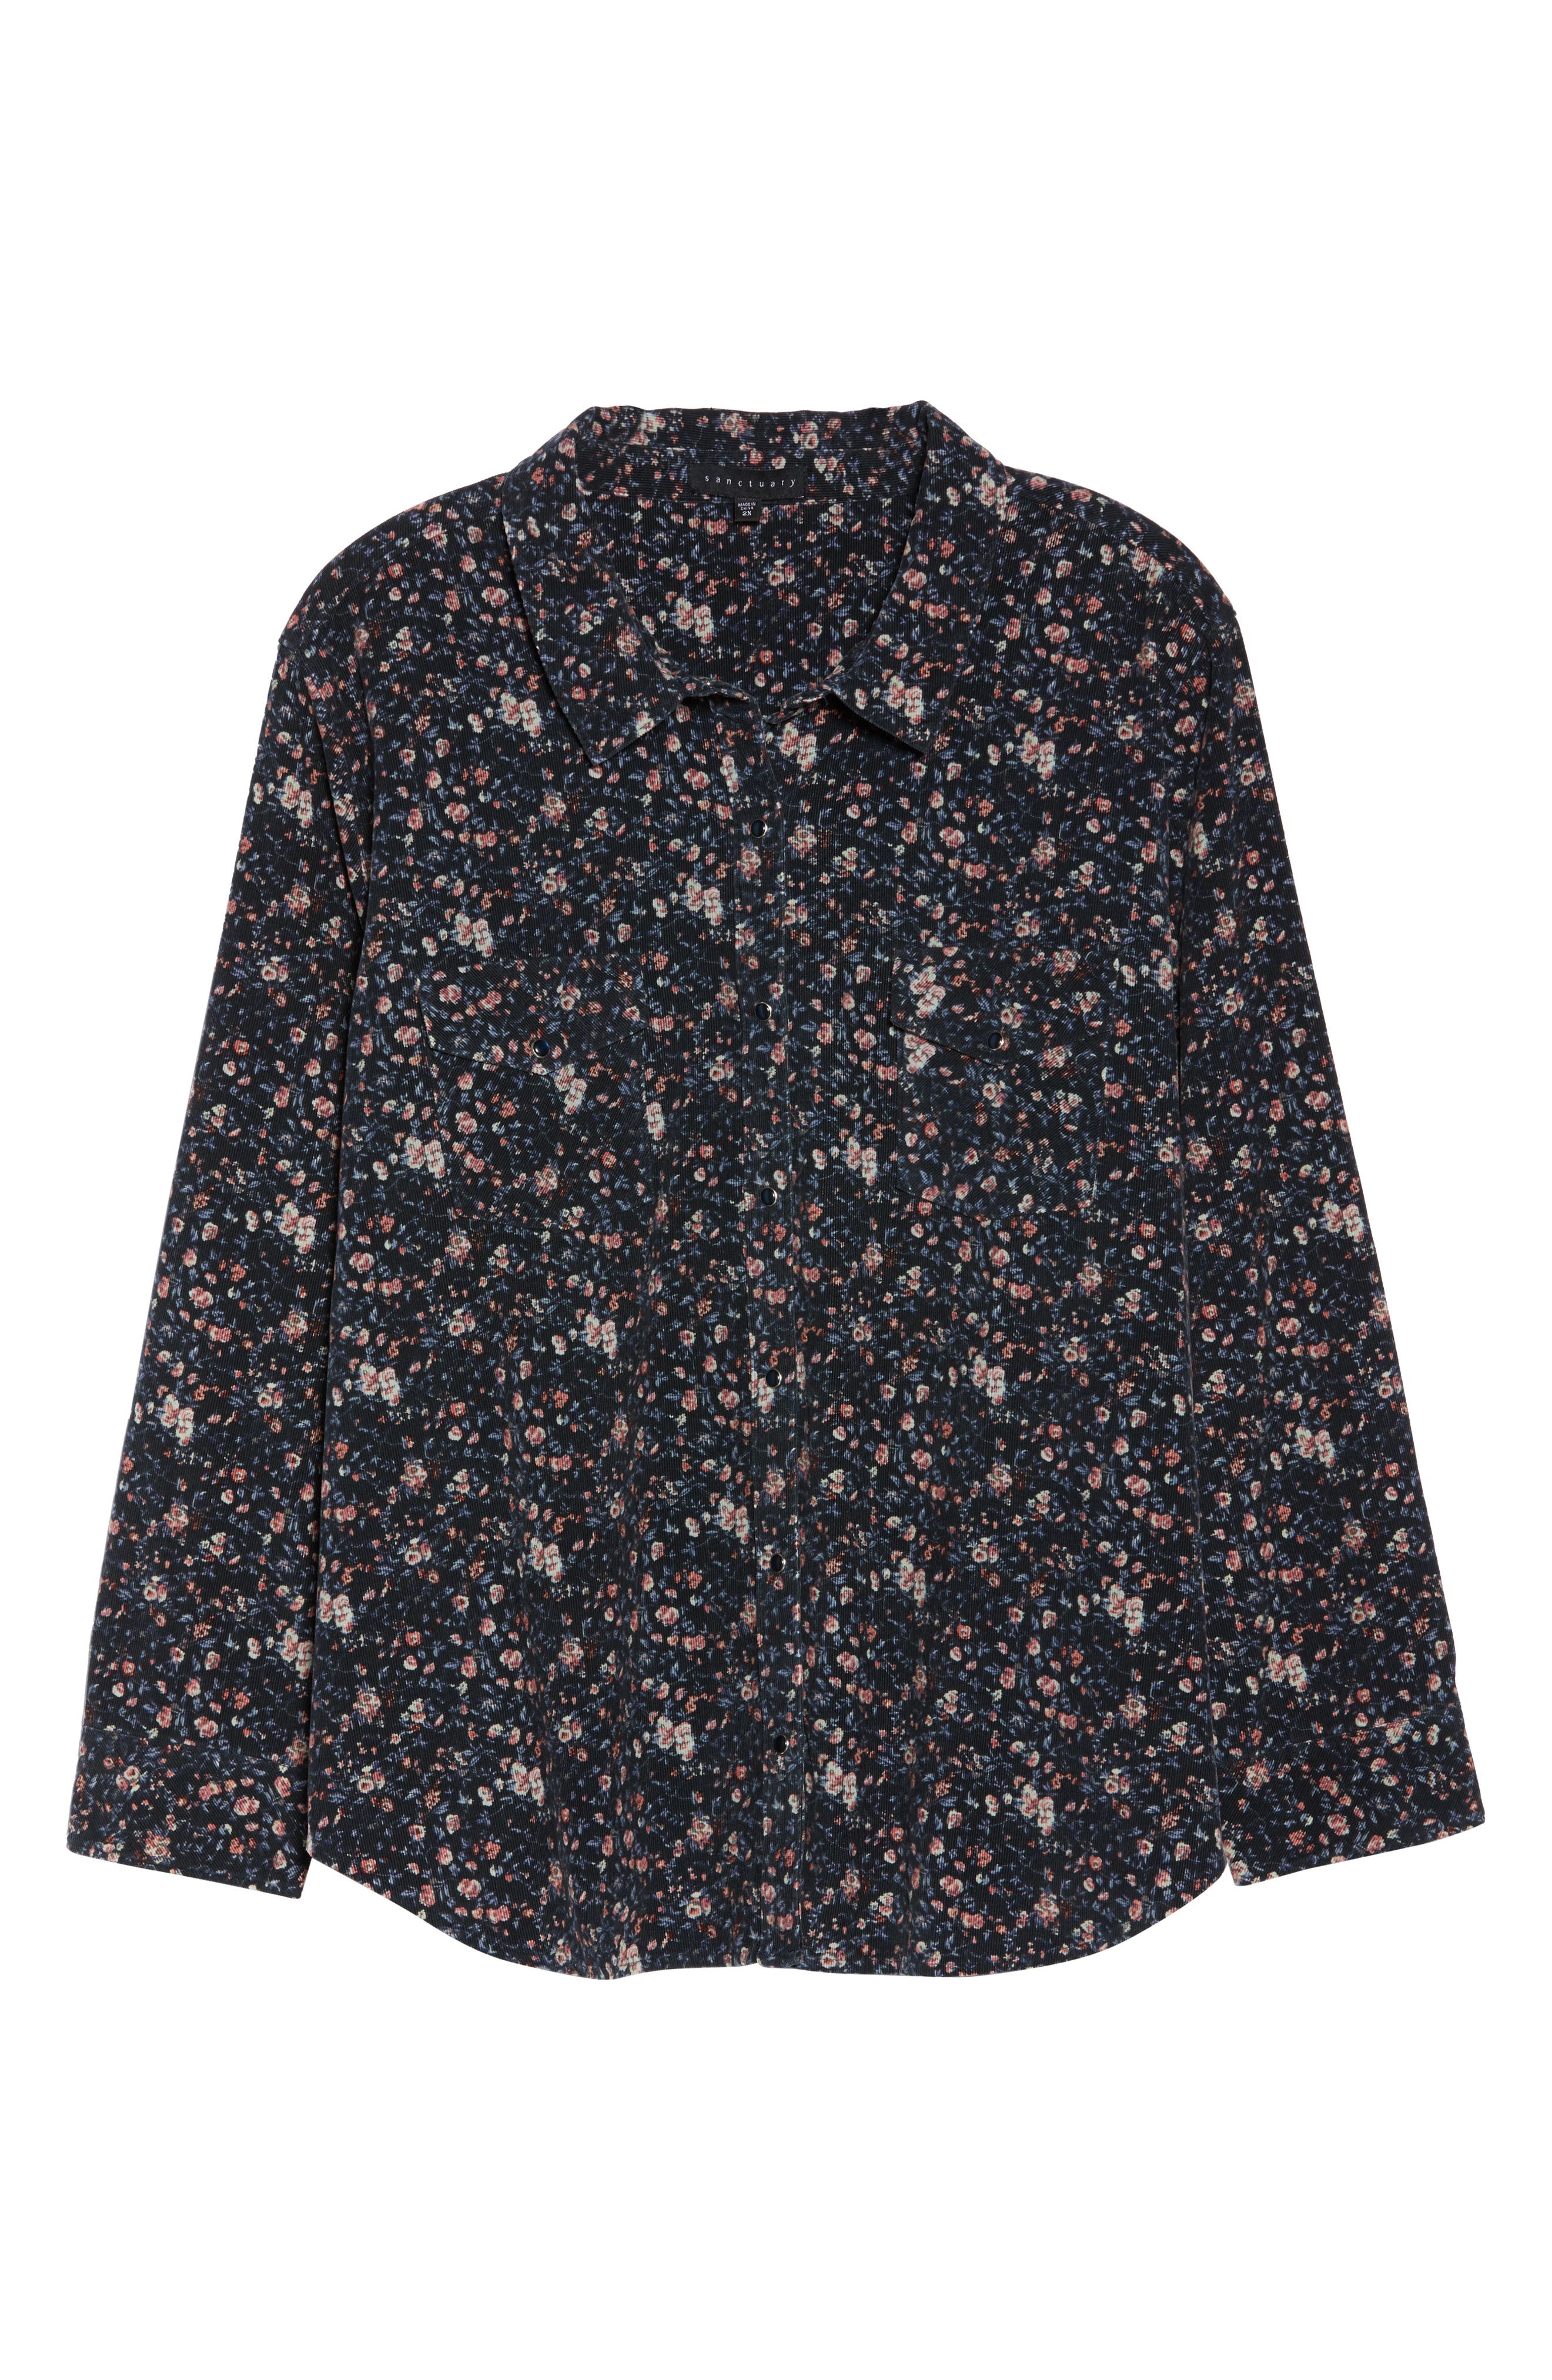 Floral Work Shirt,                             Alternate thumbnail 6, color,                             PIXIE REVL